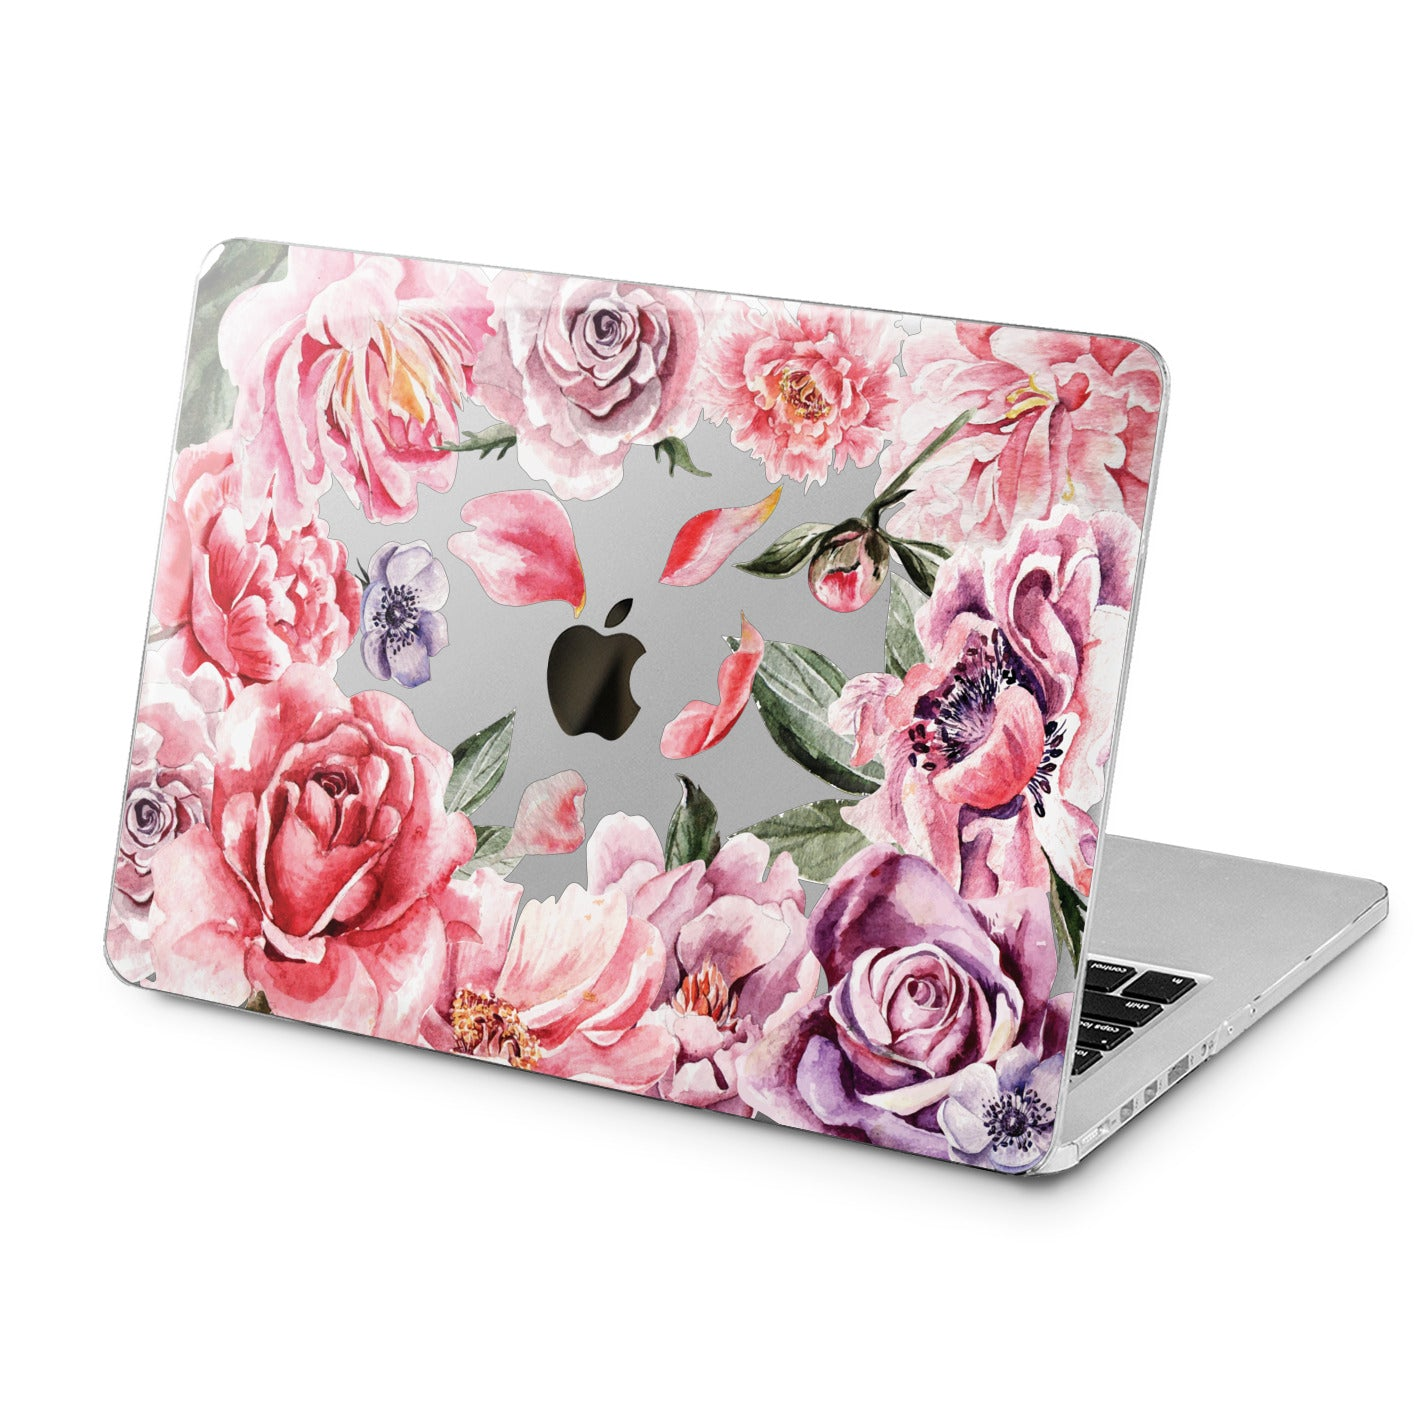 Lex Altern Lex Altern Red Roses Case for your Laptop Apple Macbook.